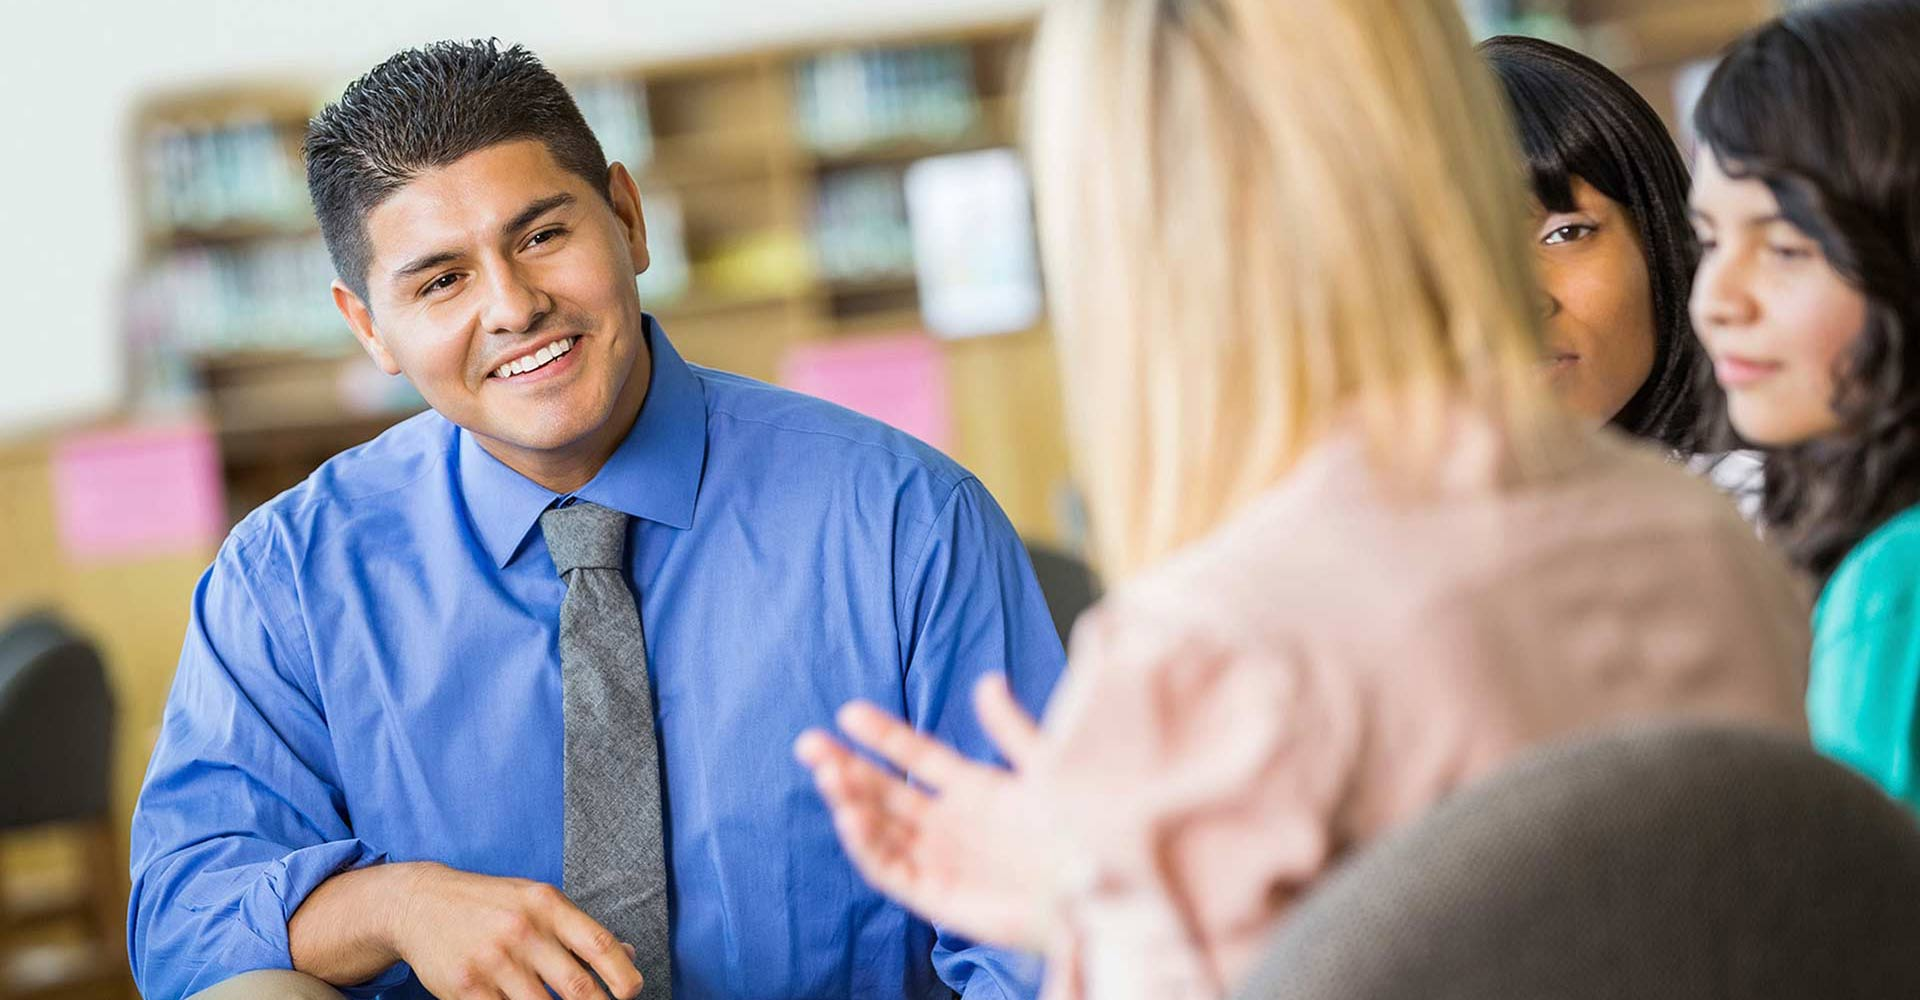 Master of Science in Education - Professional School Counseling